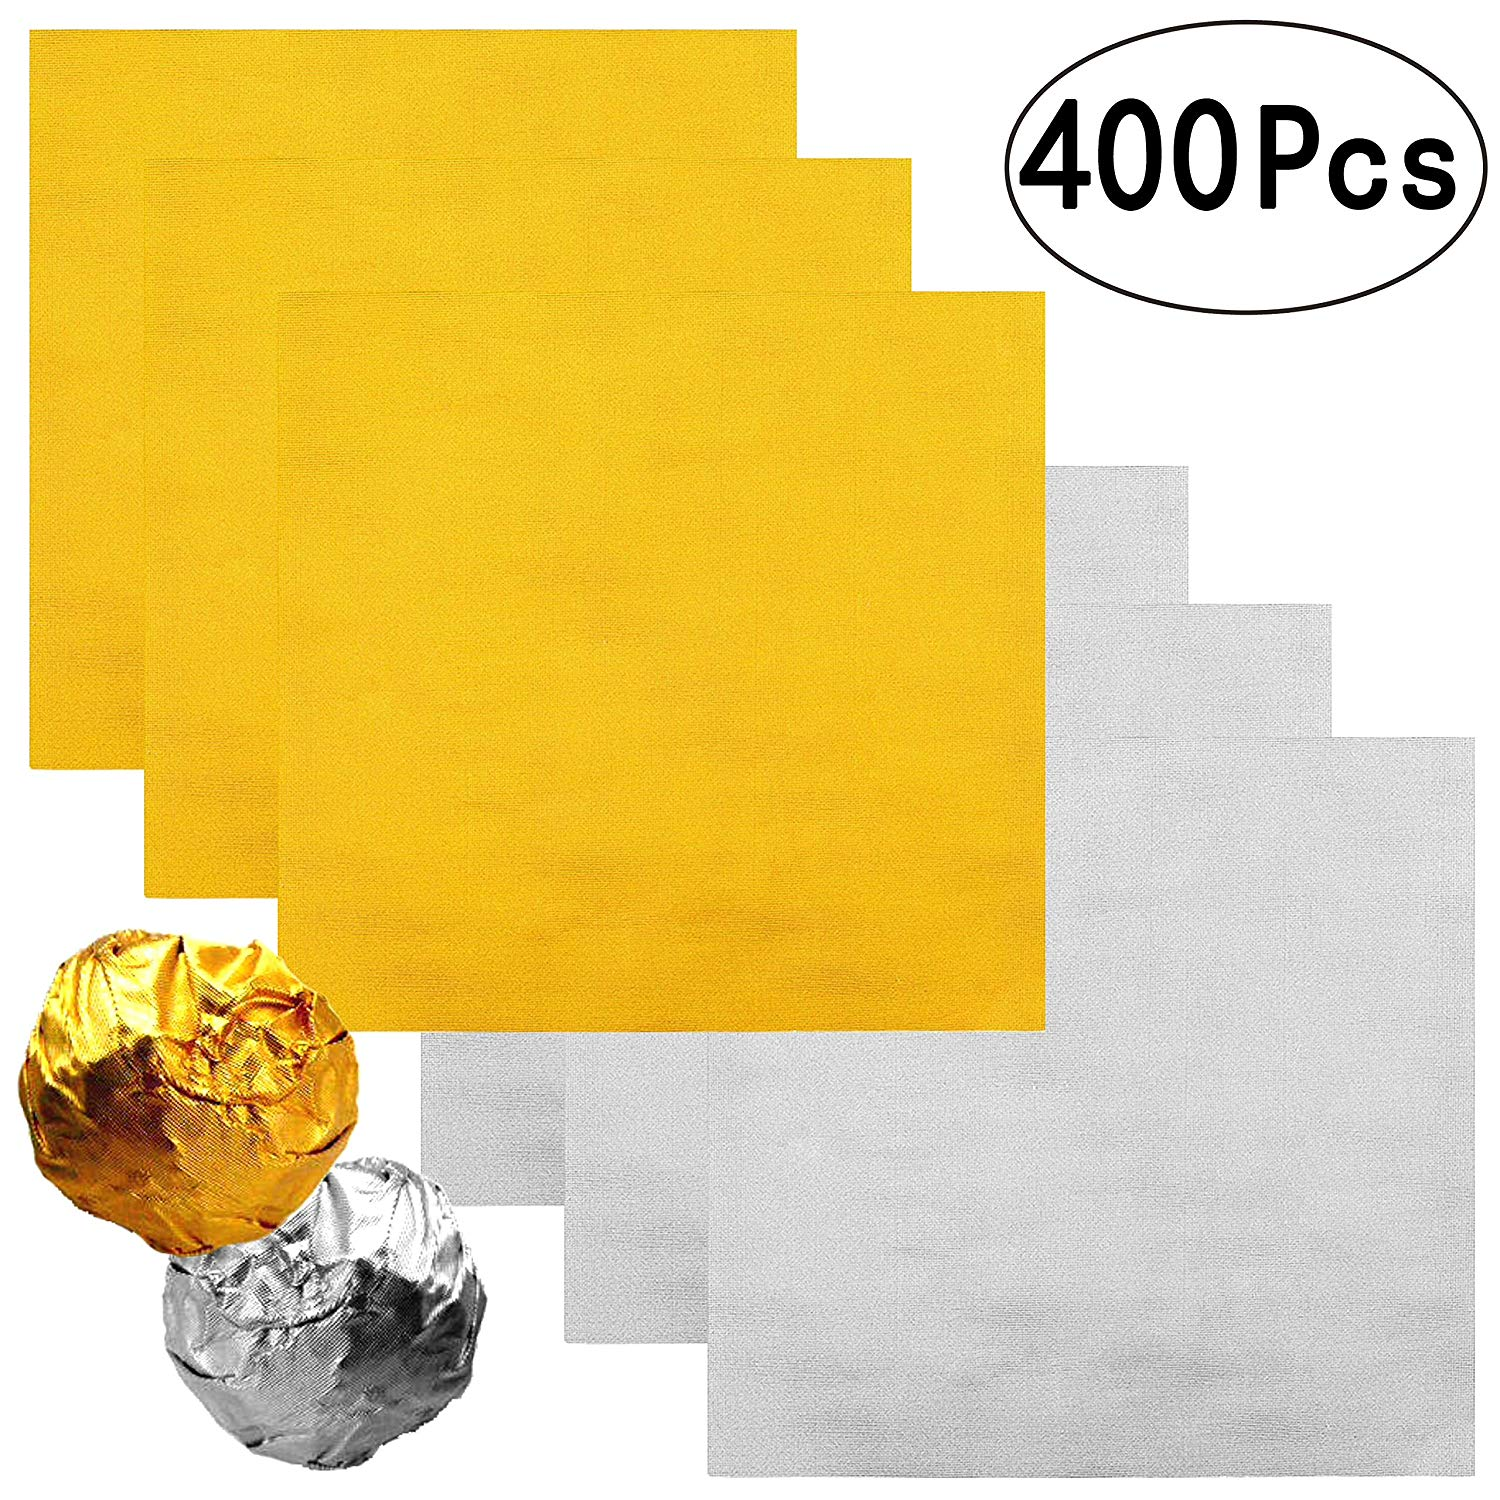 4 Inch Home-made Chocolate Candy Foil Wrappers Gold Aluminium Foil Mylar Wrapping Papers Sheets Wedding Thank You Treat Candy Packaging Gift Decoration, 400 PC